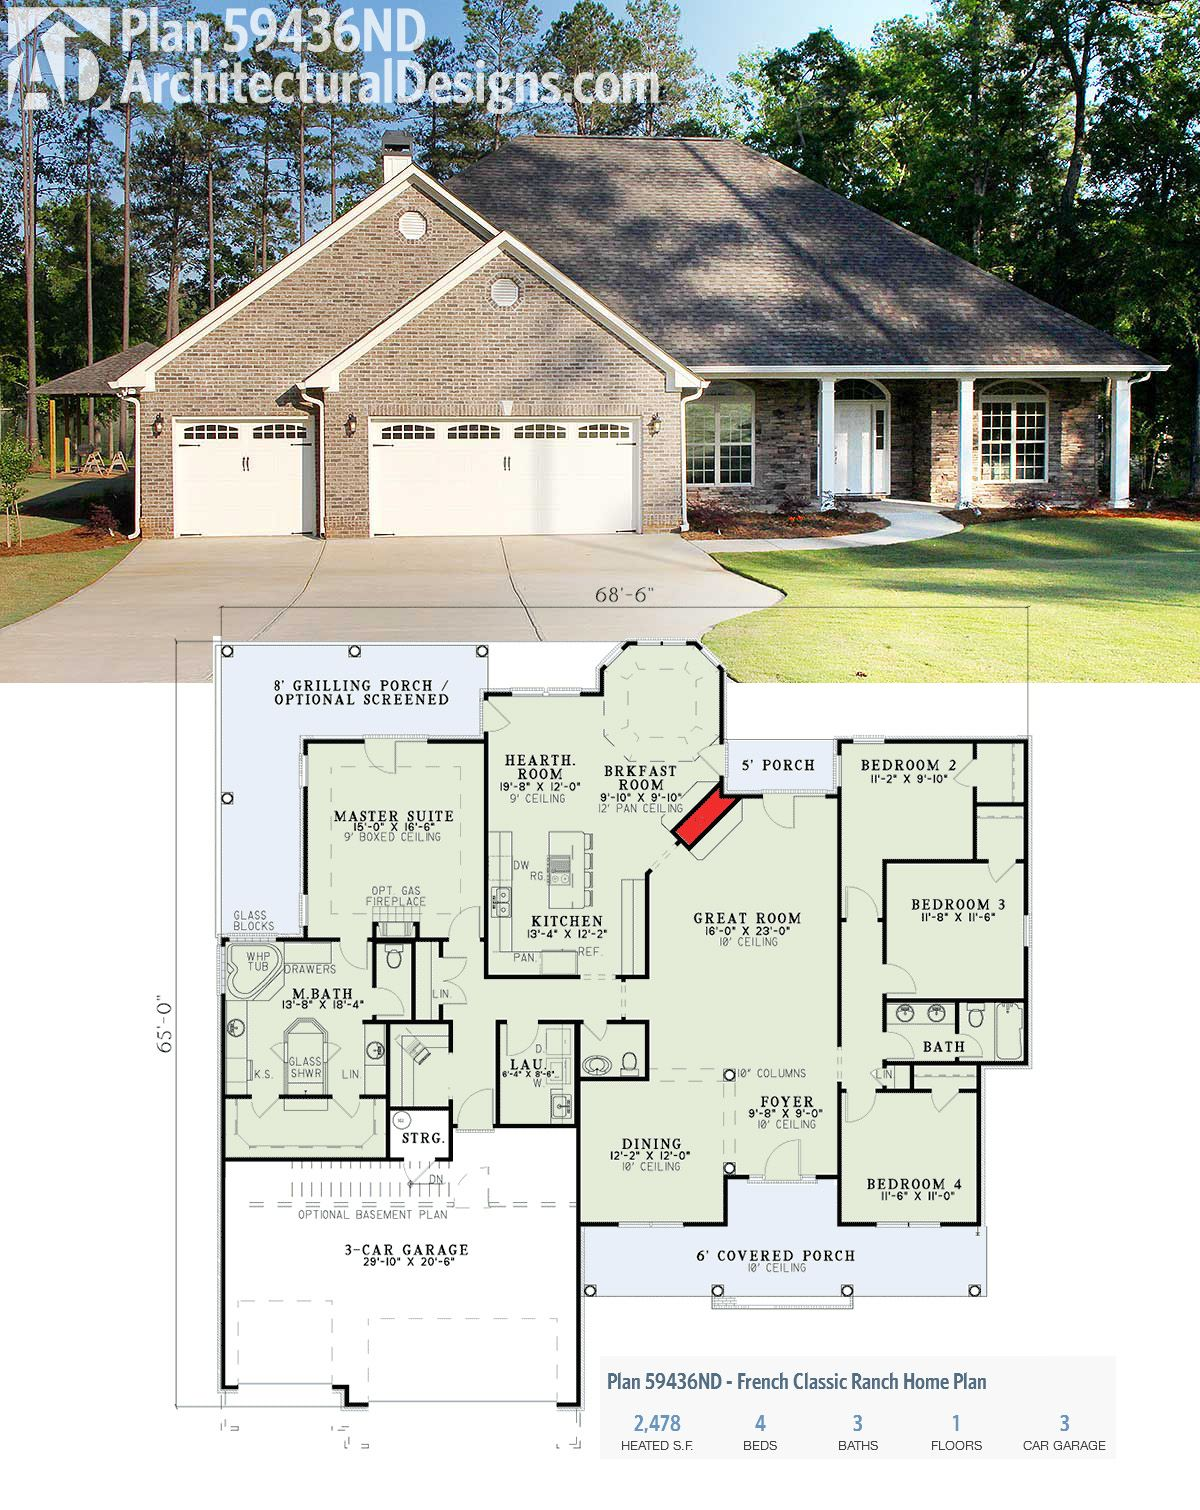 Plan 59436nd french classic ranch home plan for Classic ranch homes